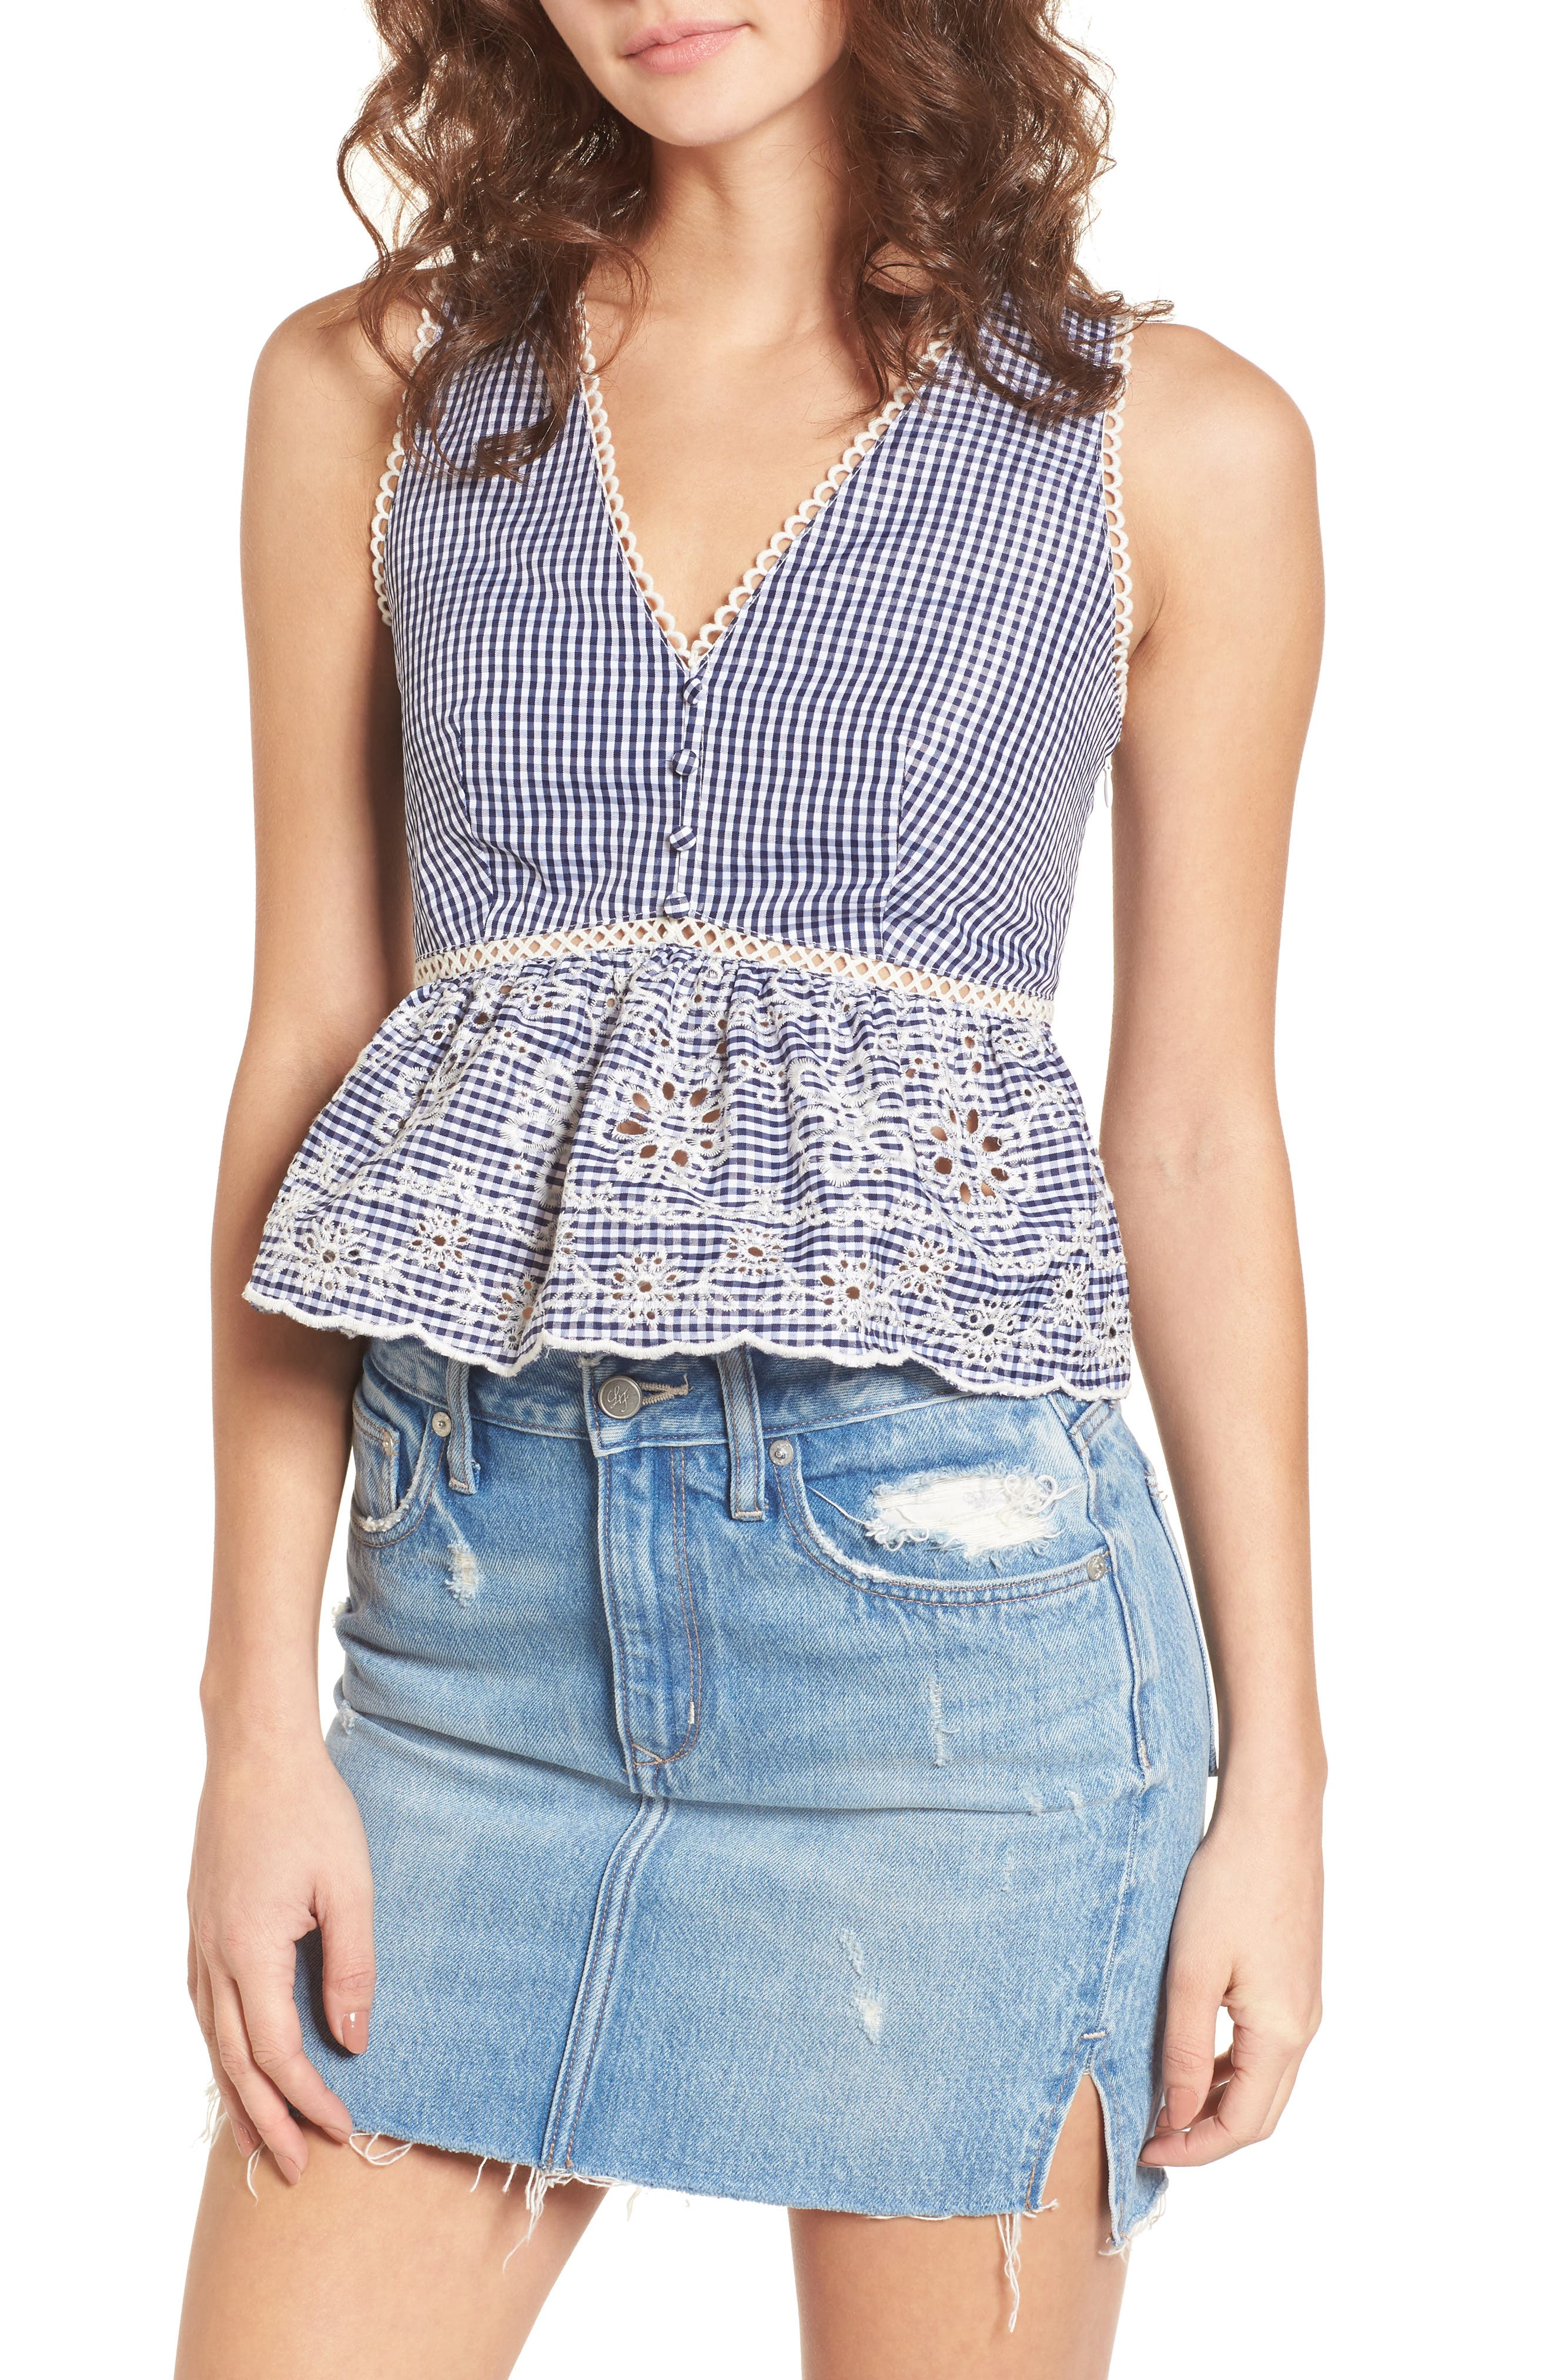 Main Image - J.O.A. Embroidered Gingham Crop Top